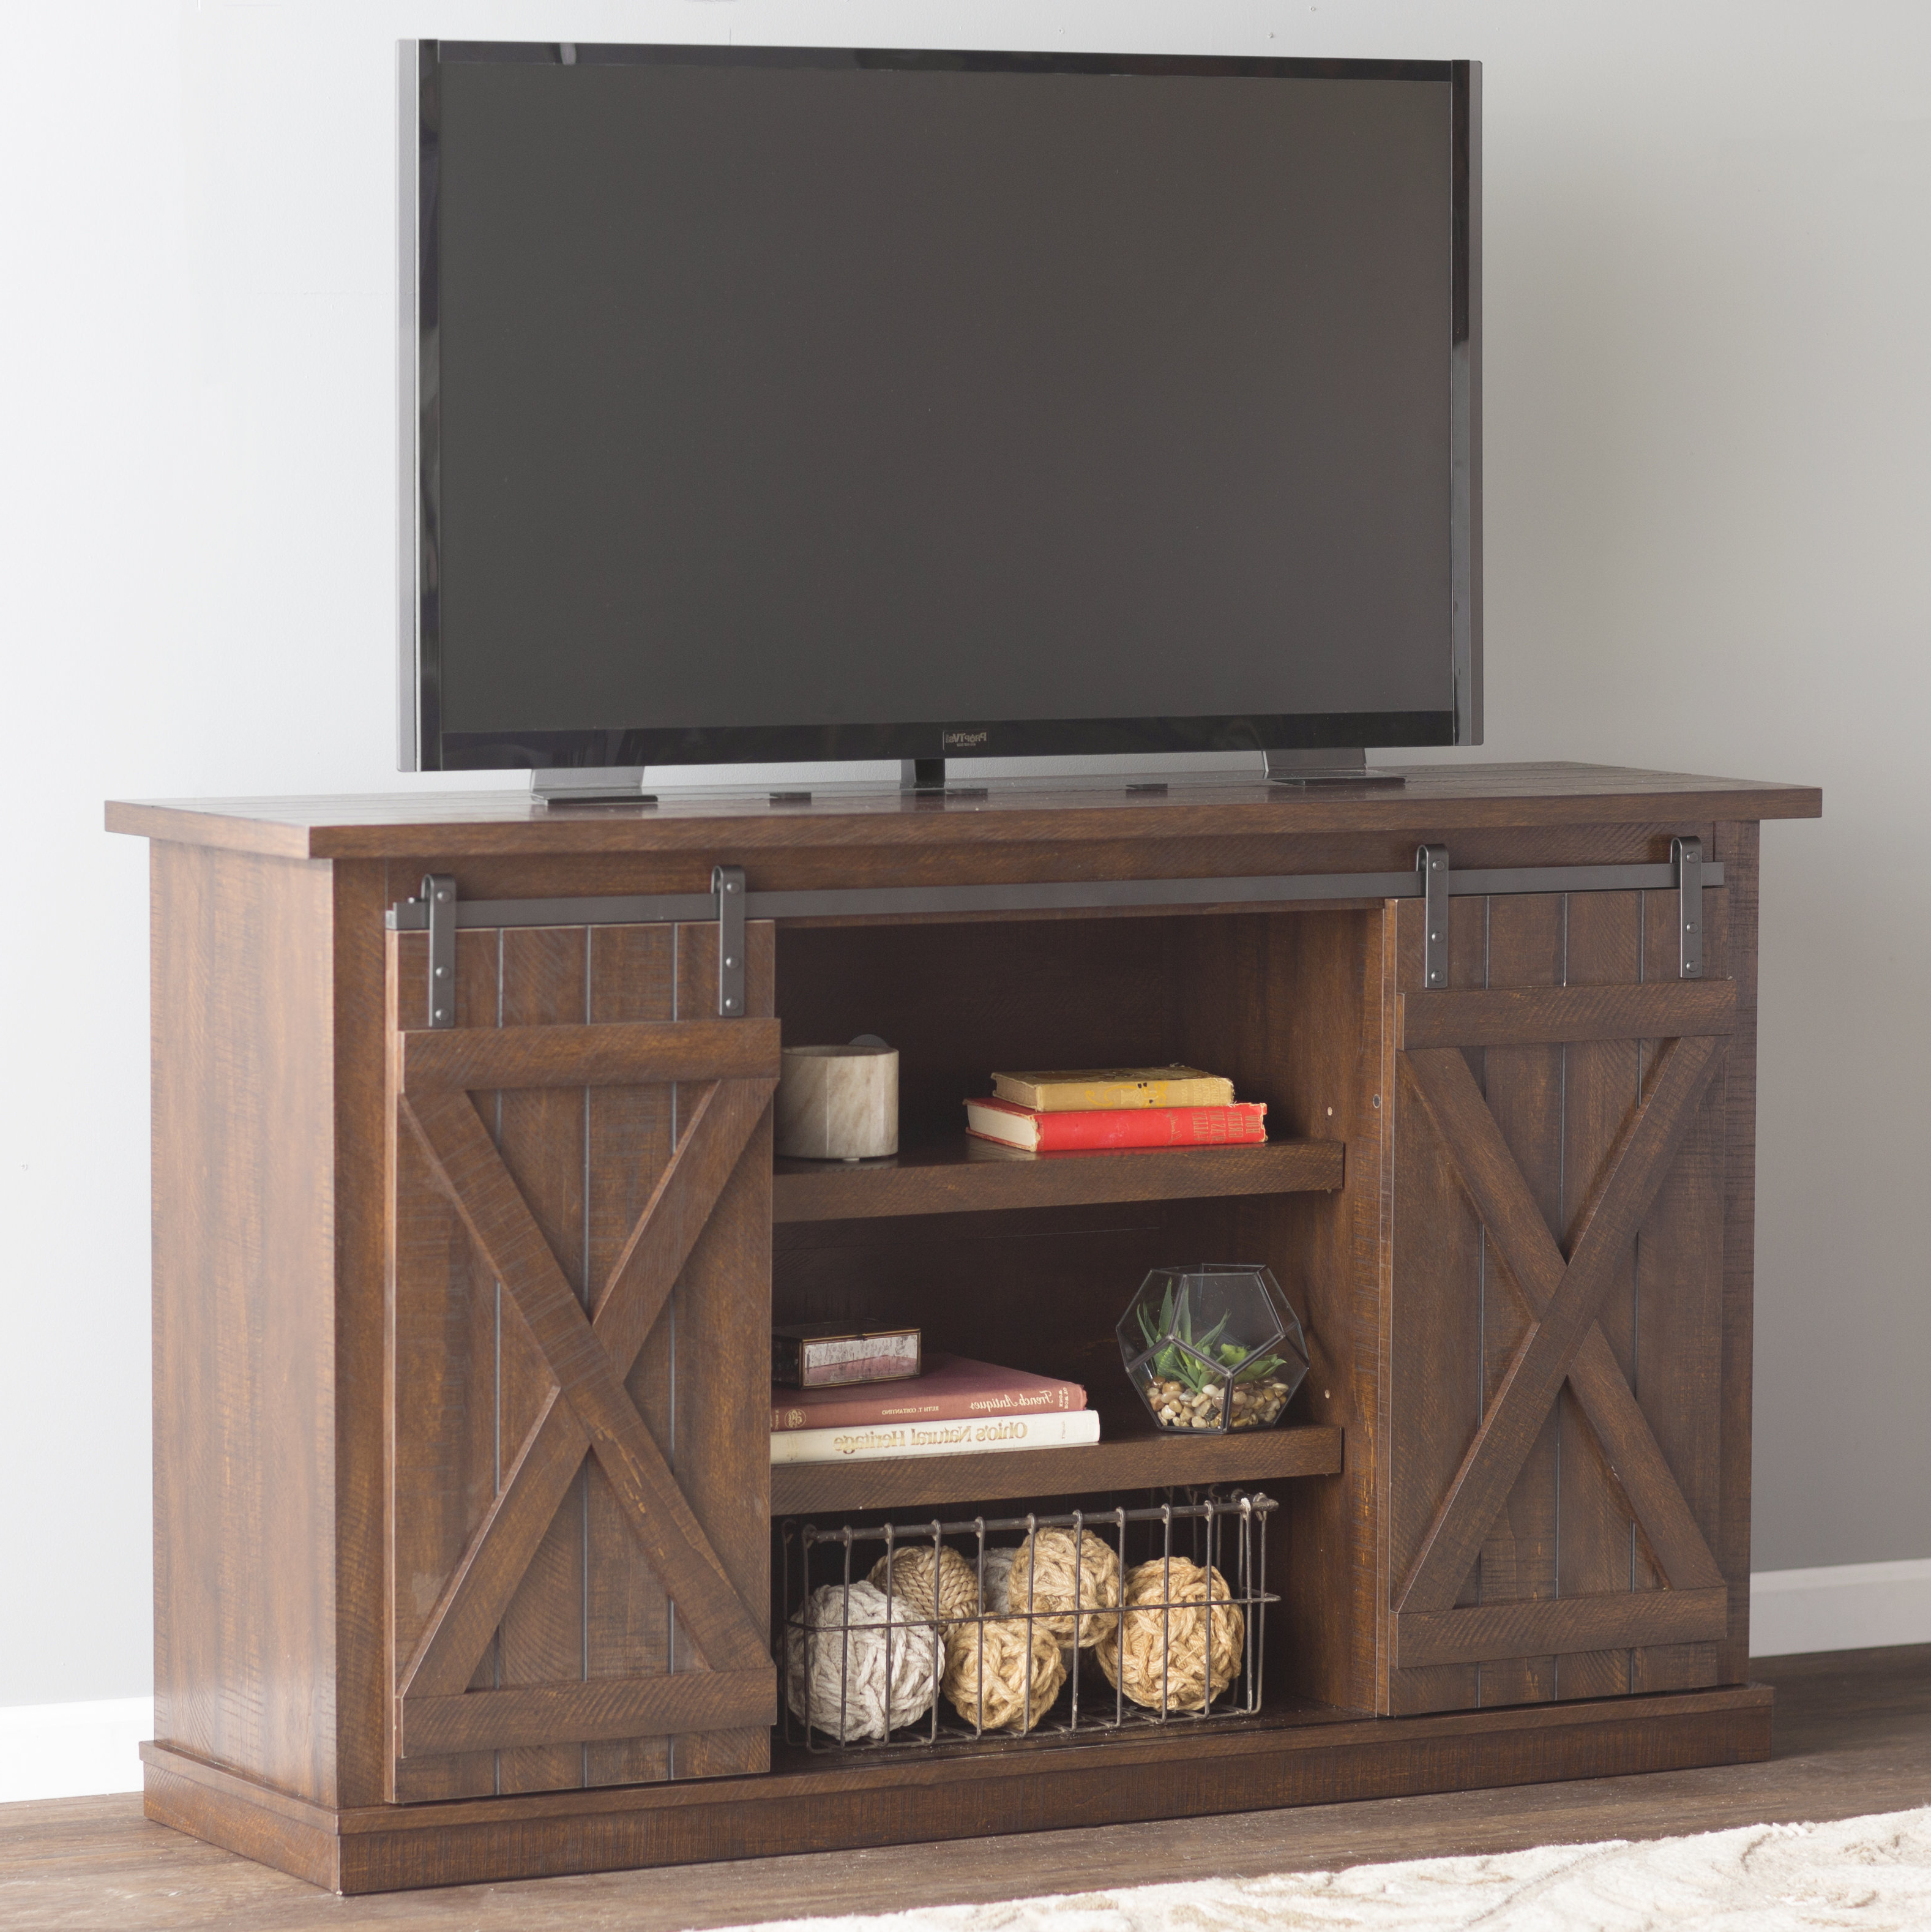 Wayfair Within Preferred Canyon 54 Inch Tv Stands (View 14 of 20)